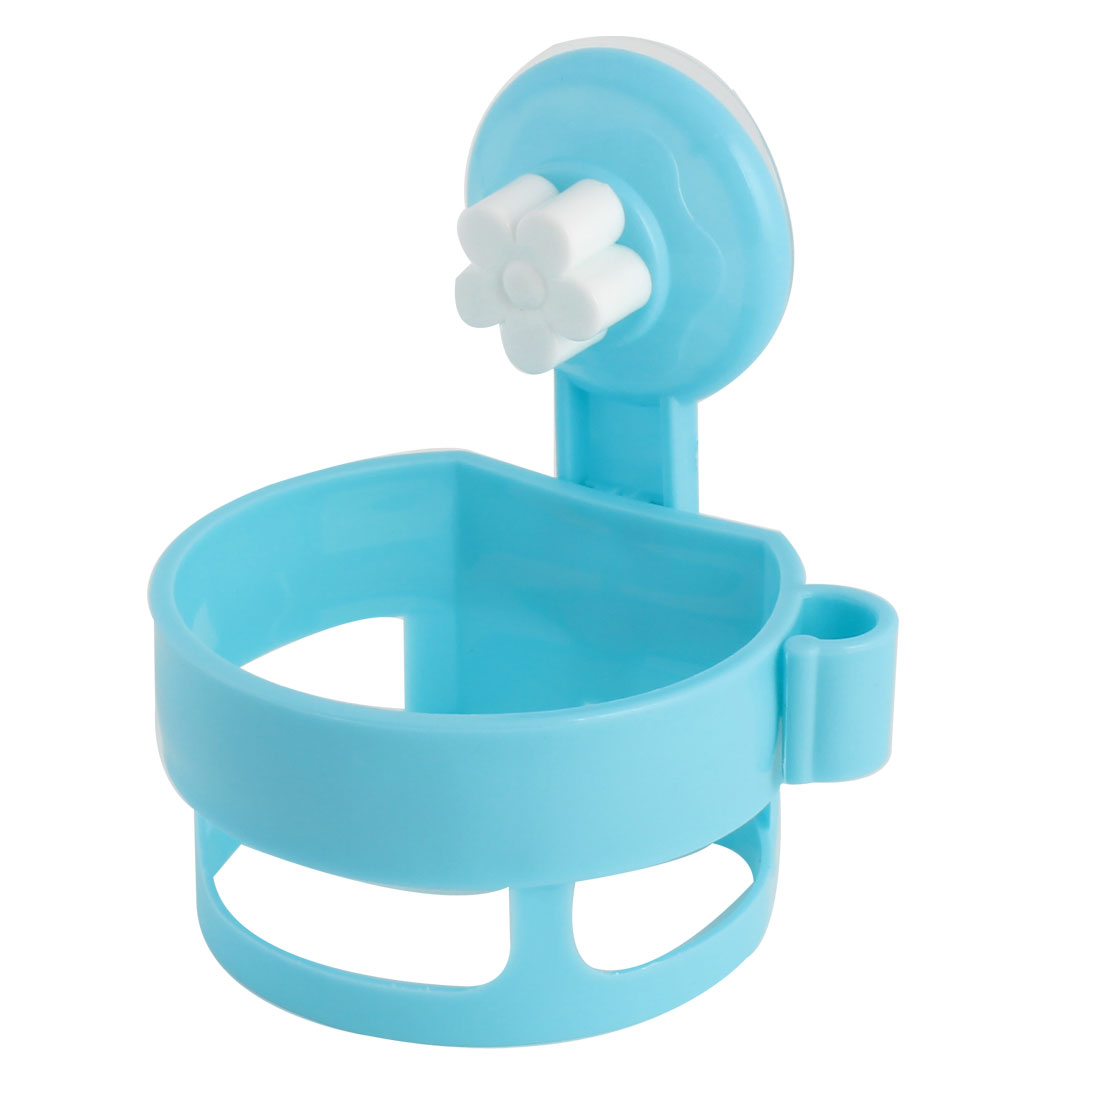 Home Suction Cup Wall Mount Plastic Round Hair Blow Dryer Holder Stand Rack Cyan